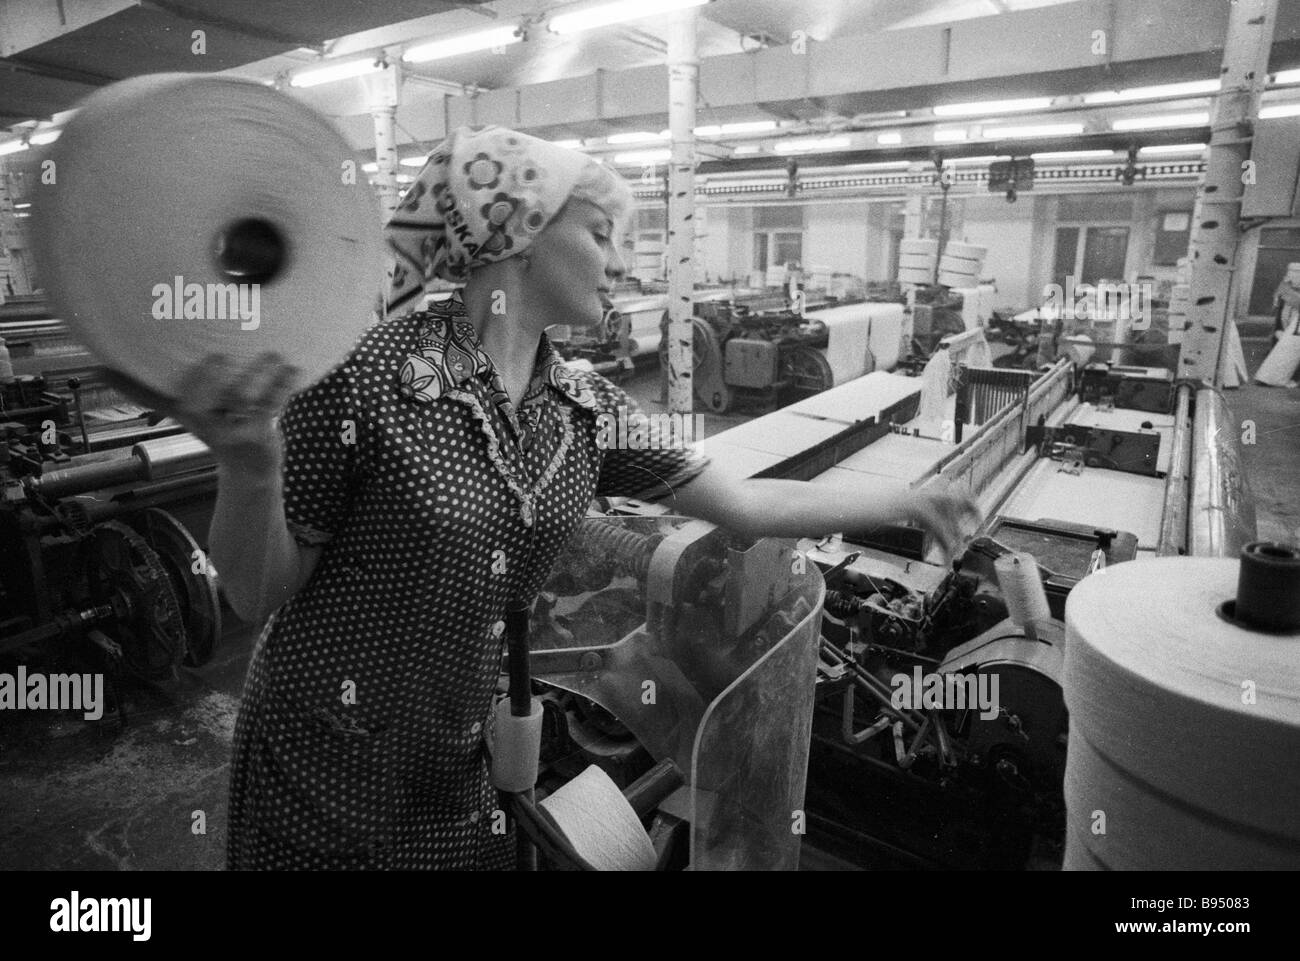 A textile plant worker operating a loom - Stock Image